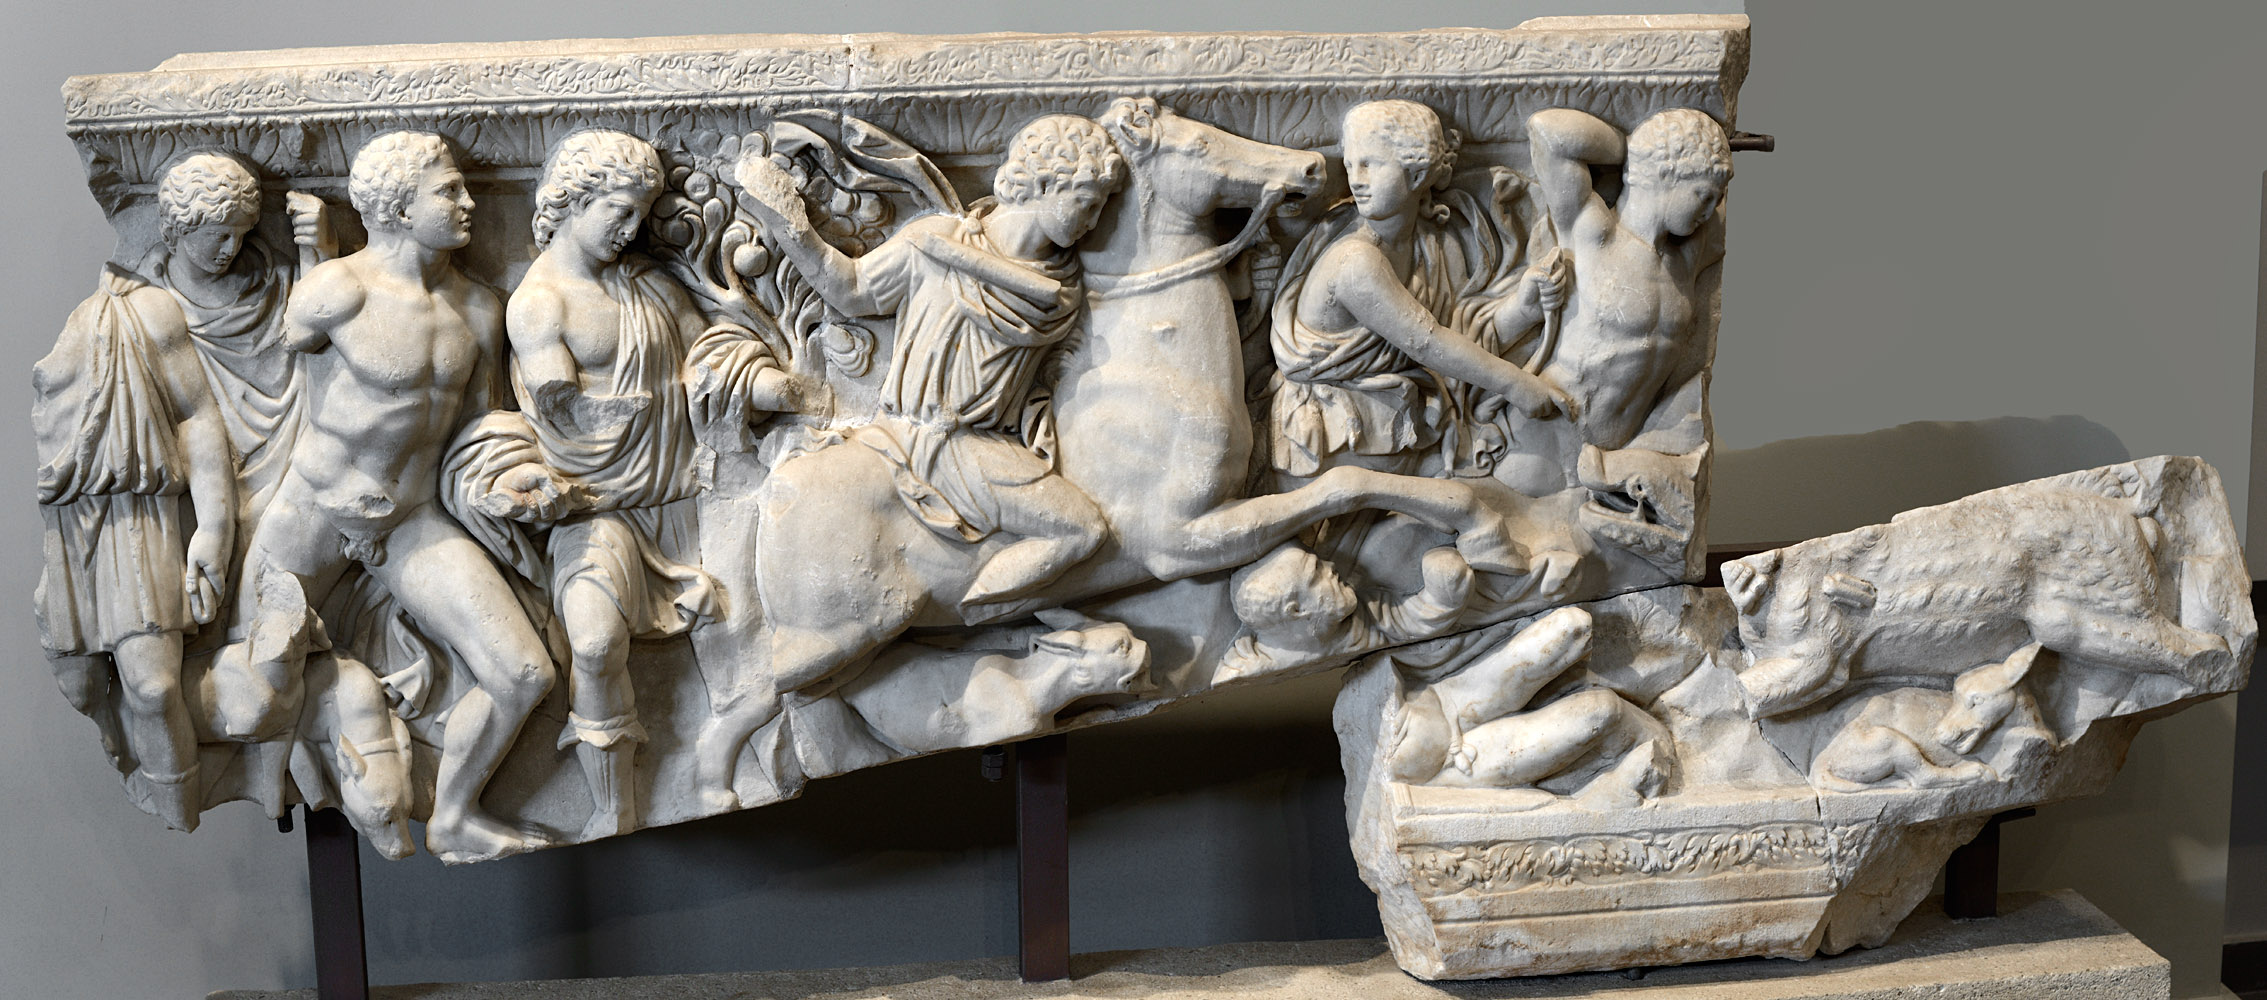 Fragments of an attic sarcophagus with a scene of Calydonian hunt (front relief). Marble. 225-250 CE. Thessaloniki, Archaeological Museum